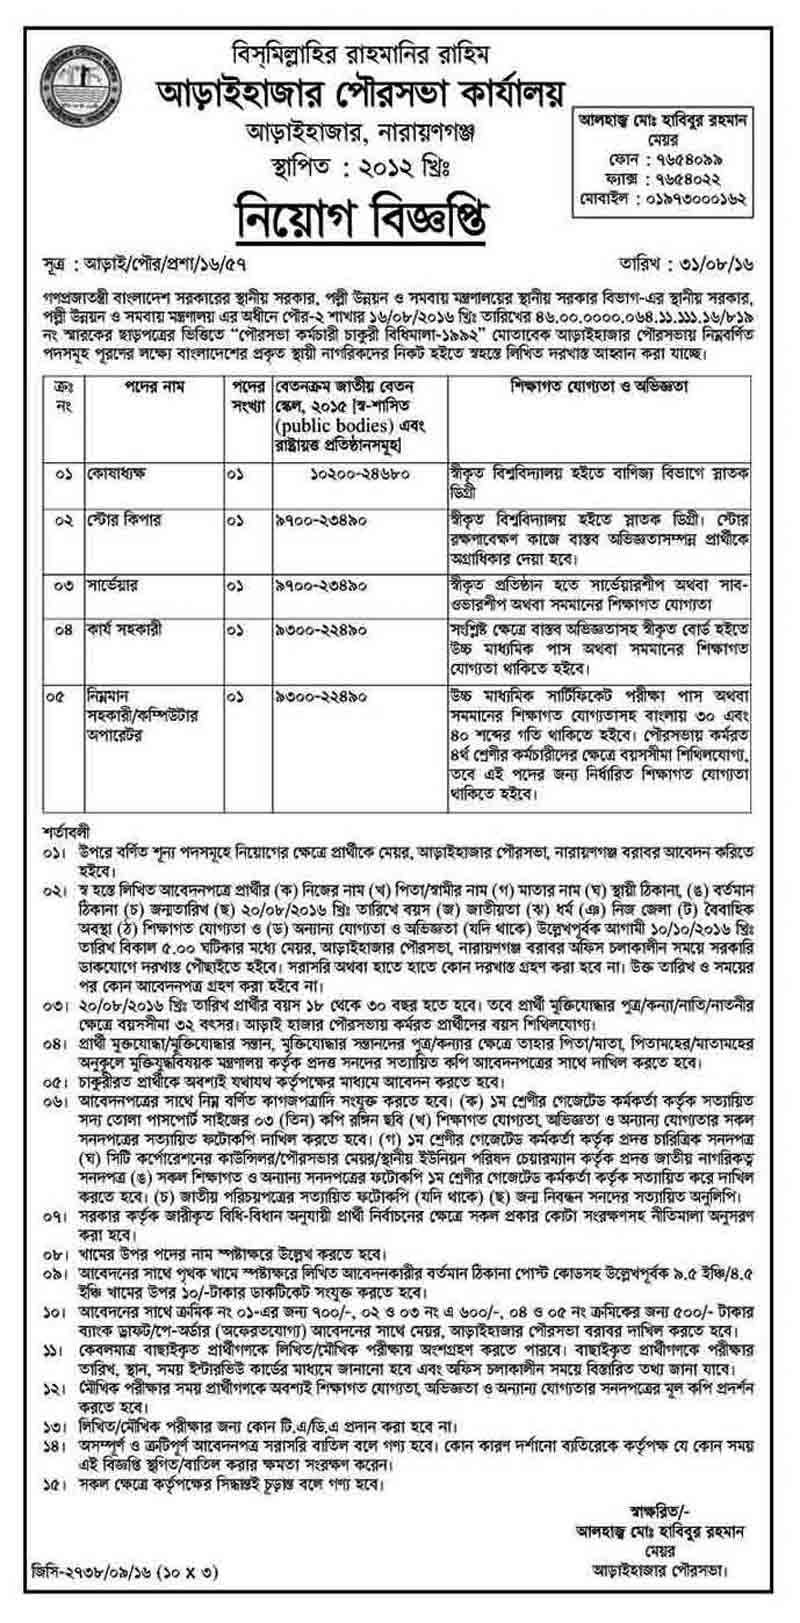 araihazar municipality office job circular